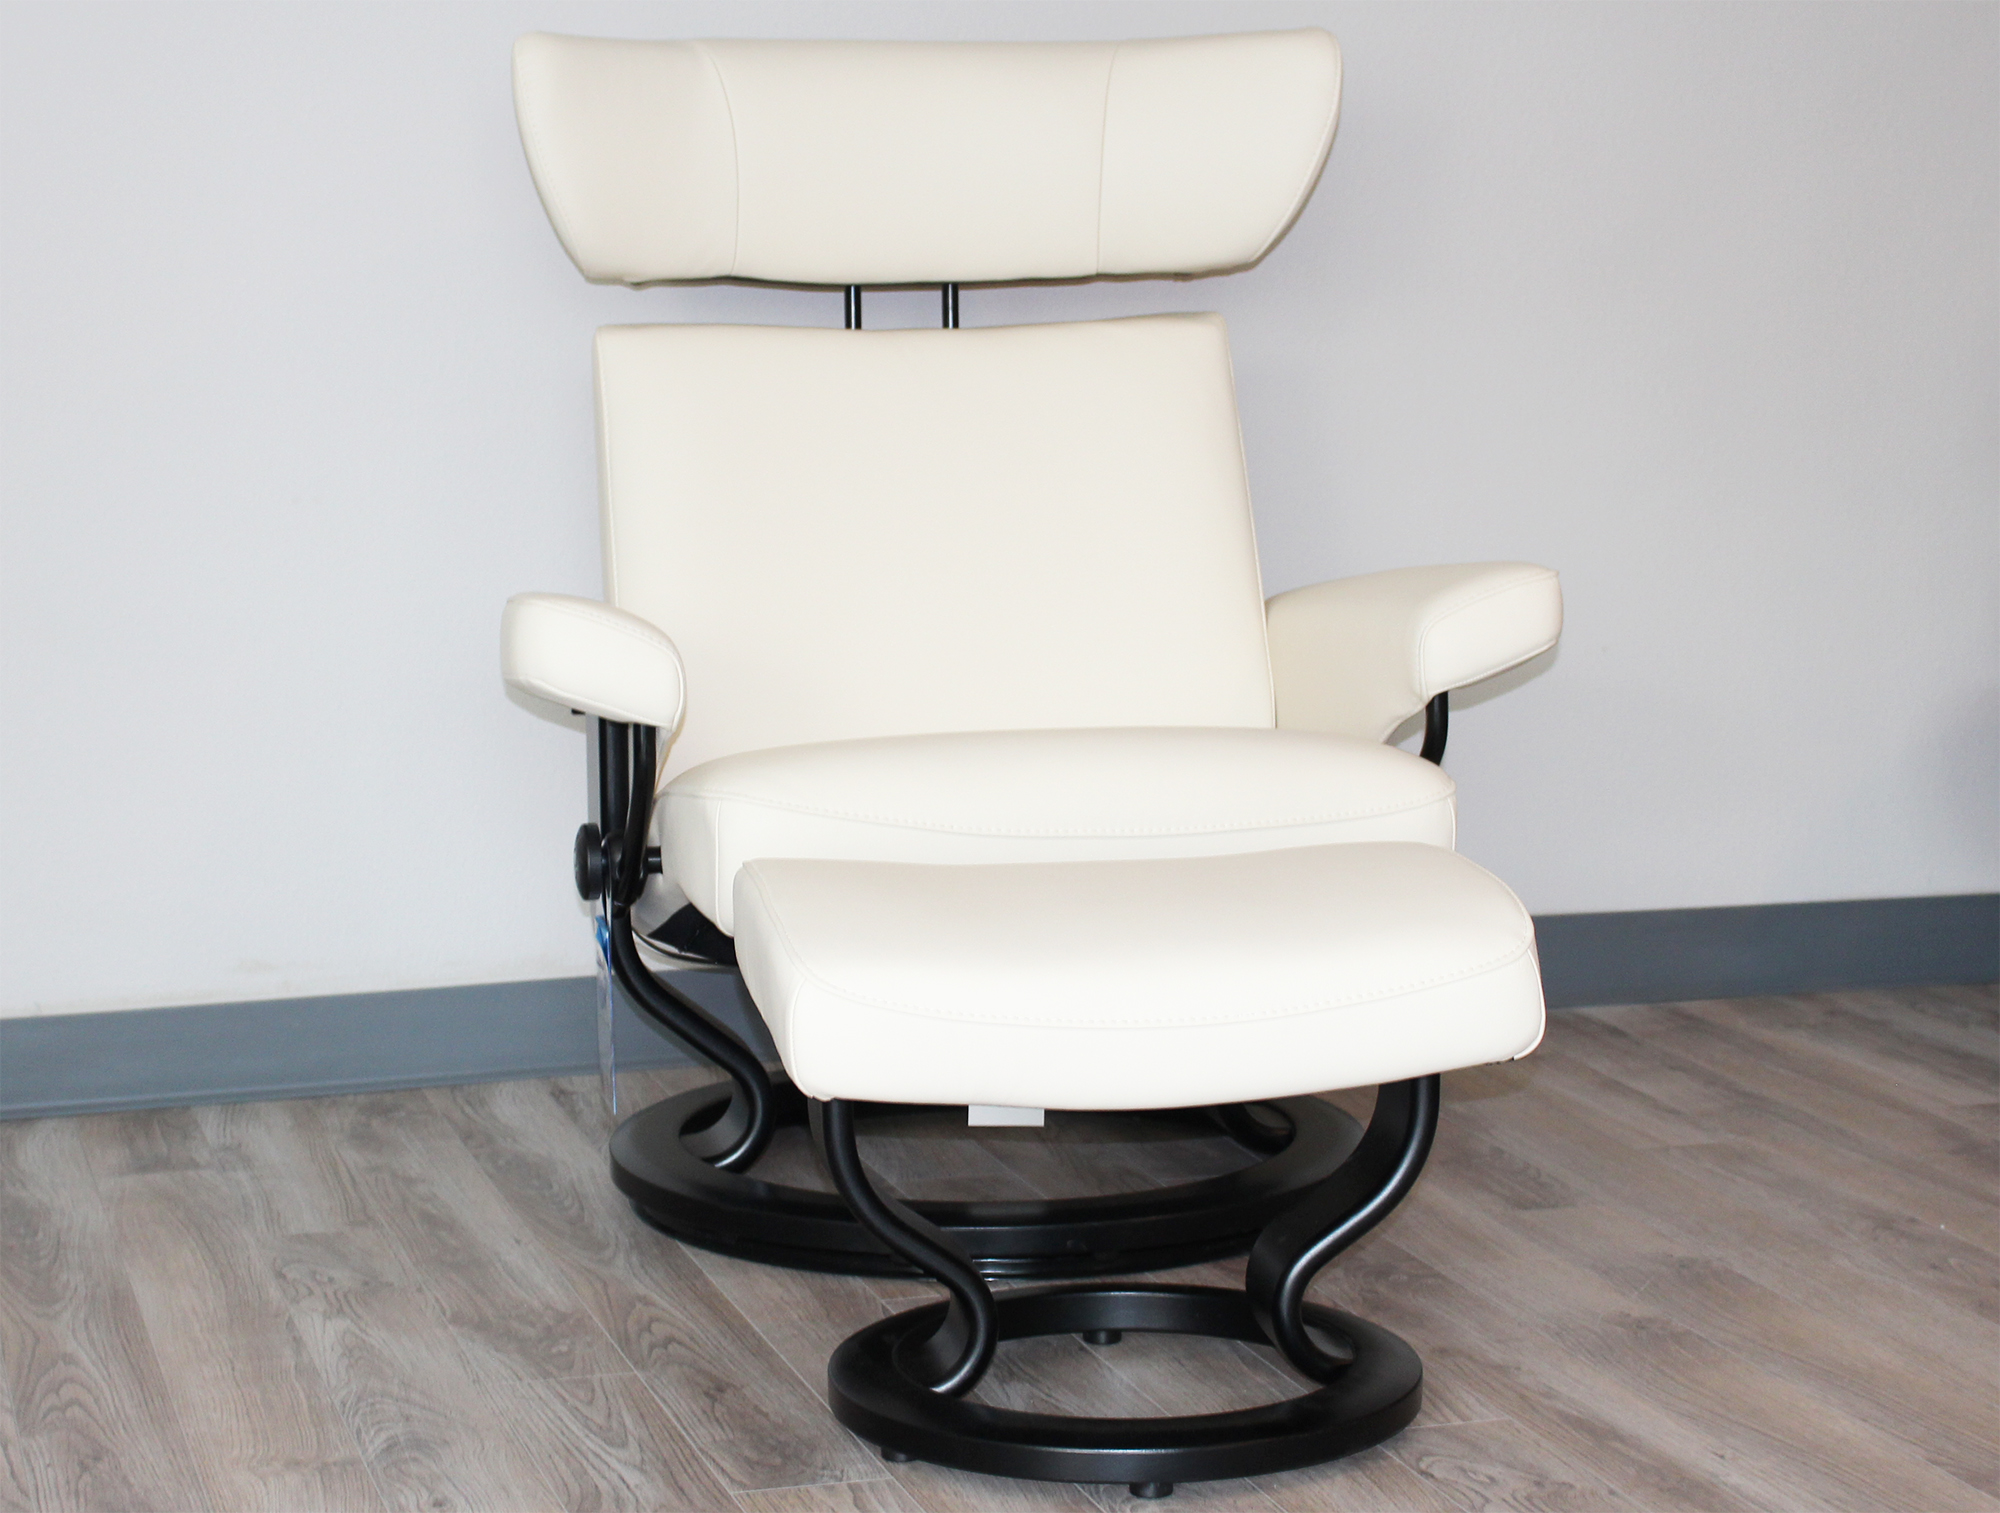 Stressless viva recliner chair and ottoman in paloma vanilla leather